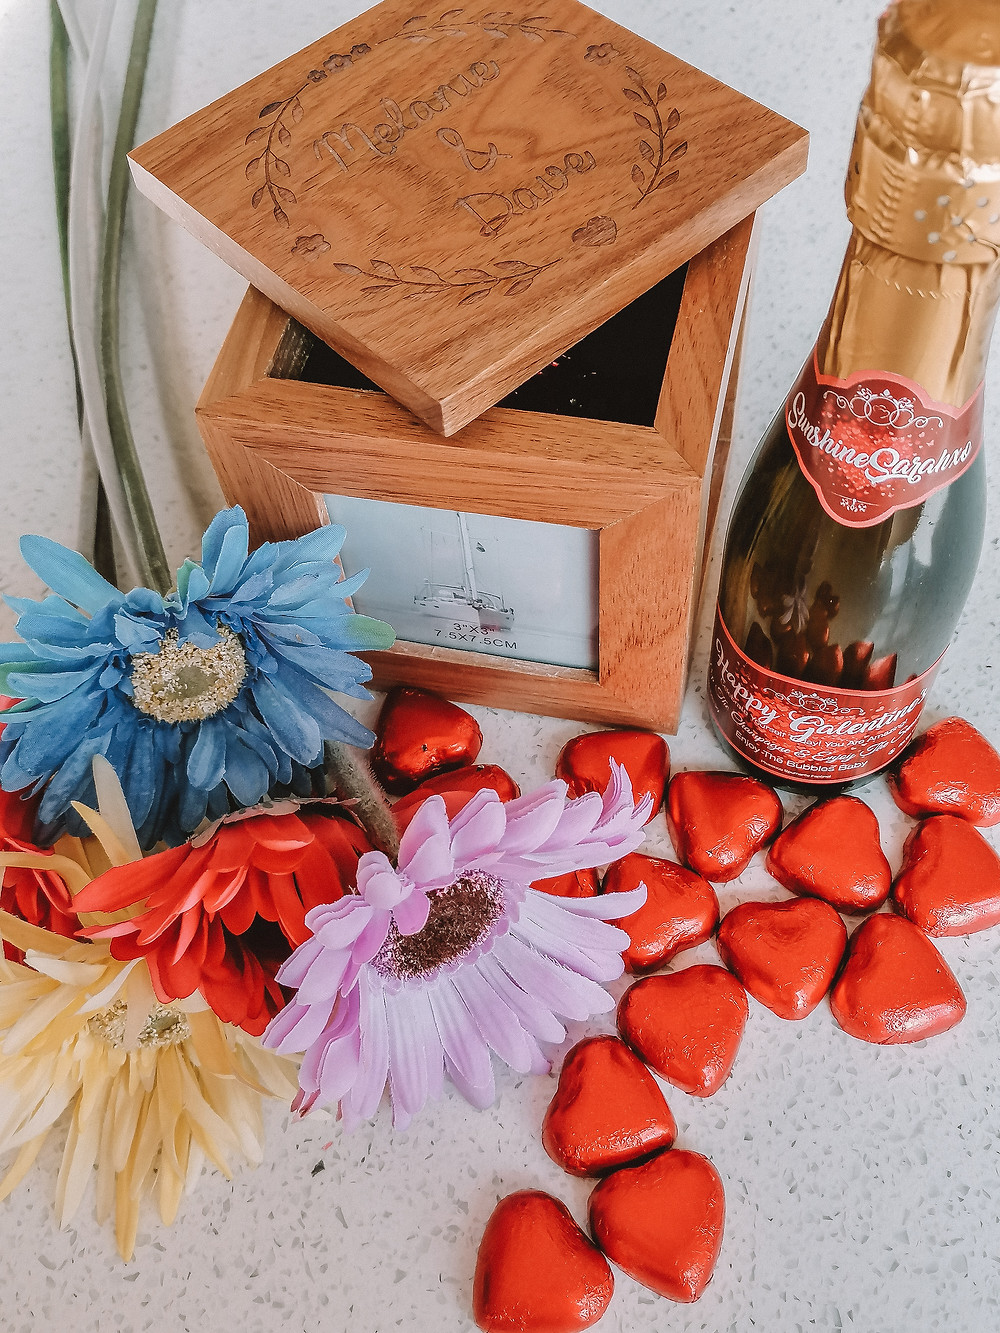 Say It With Champers bottle, chocolate hearts, fake flowers and personalised photo box